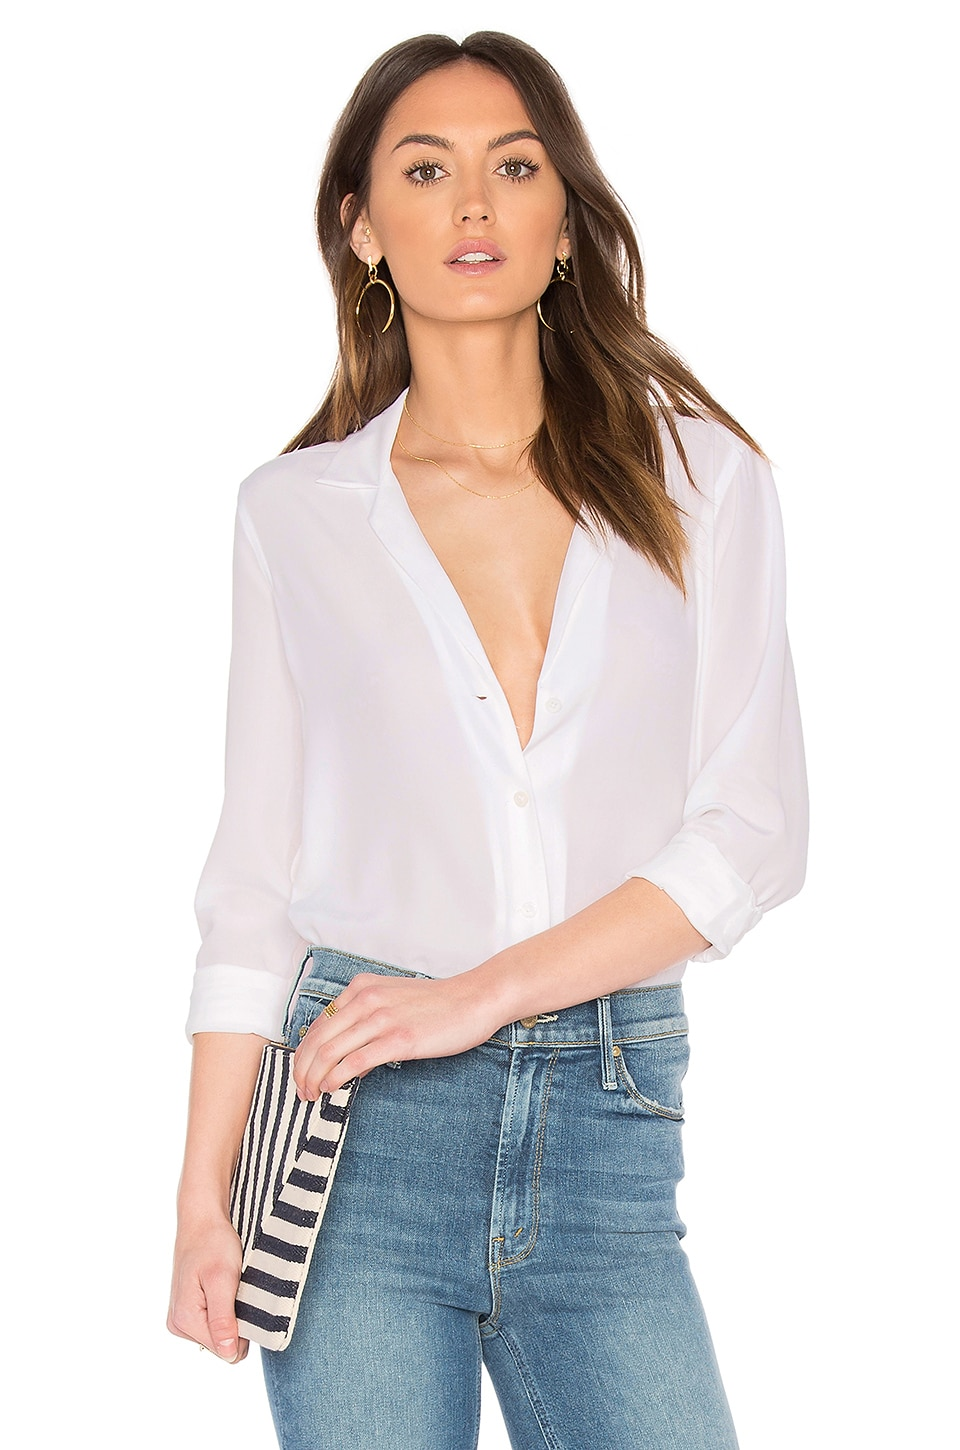 Equipment Adalyn Blouse in Bright White